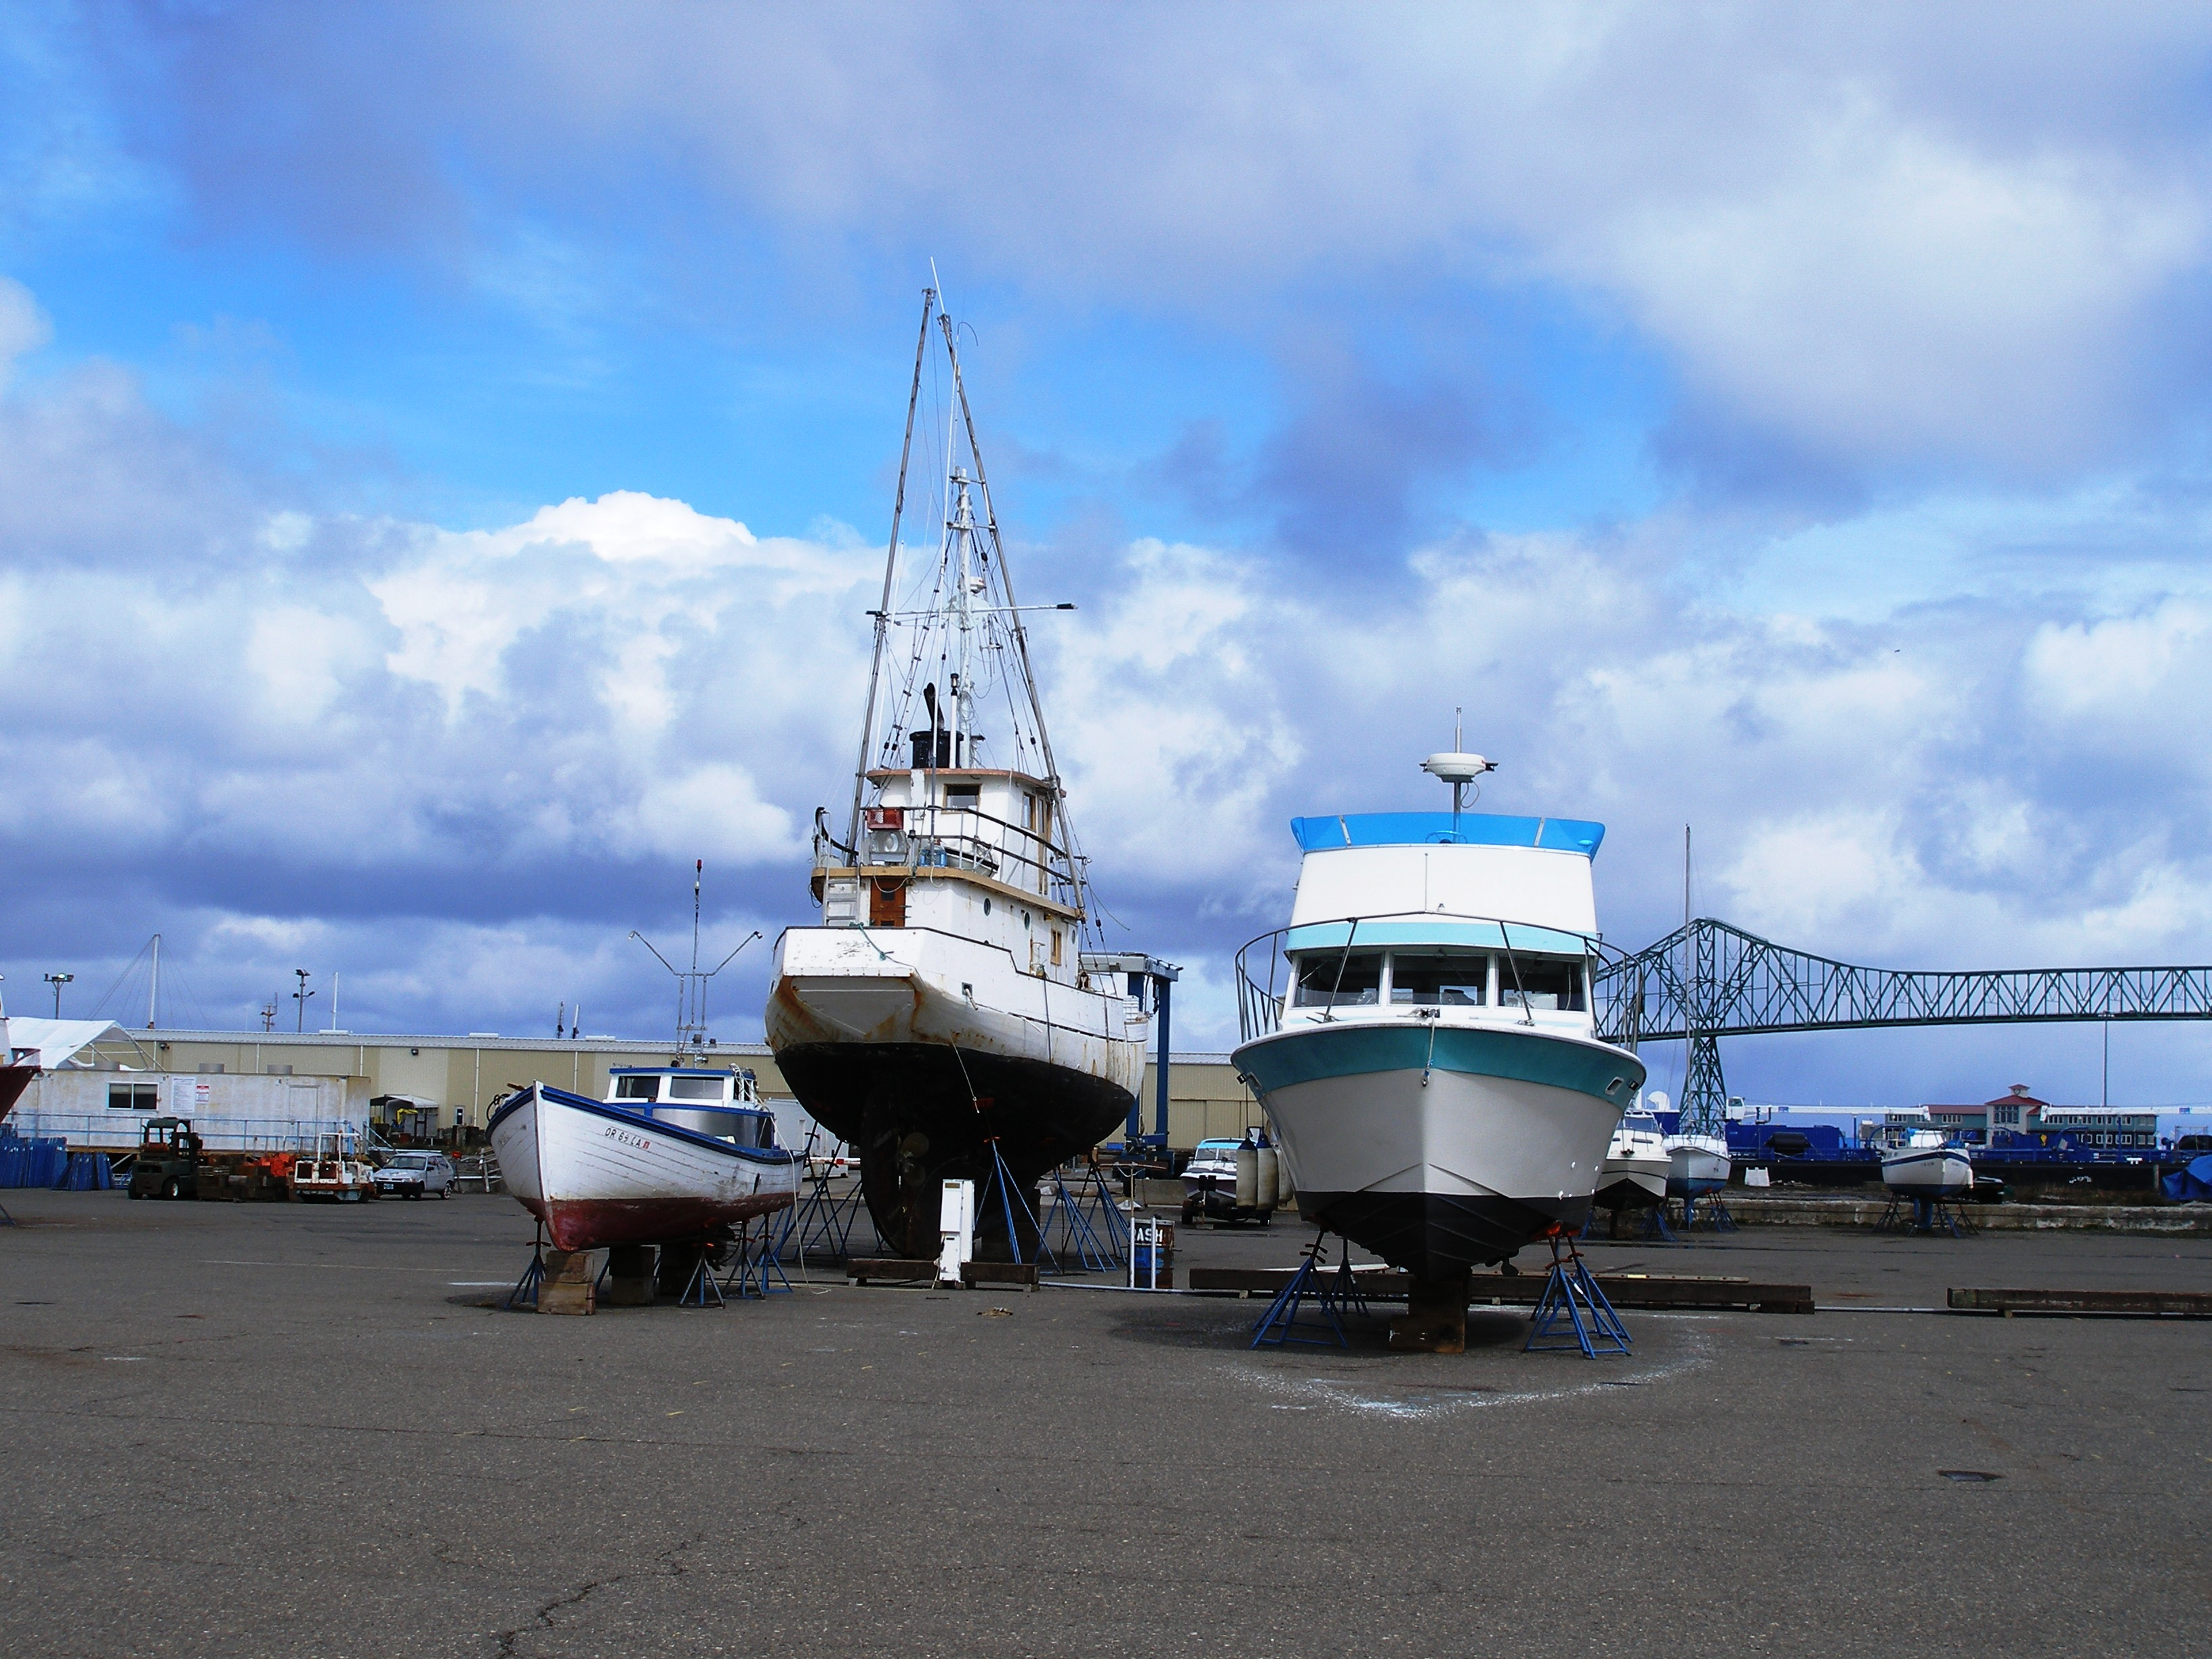 Gillnetter, troller and charter sit side by side out of the water and in storage